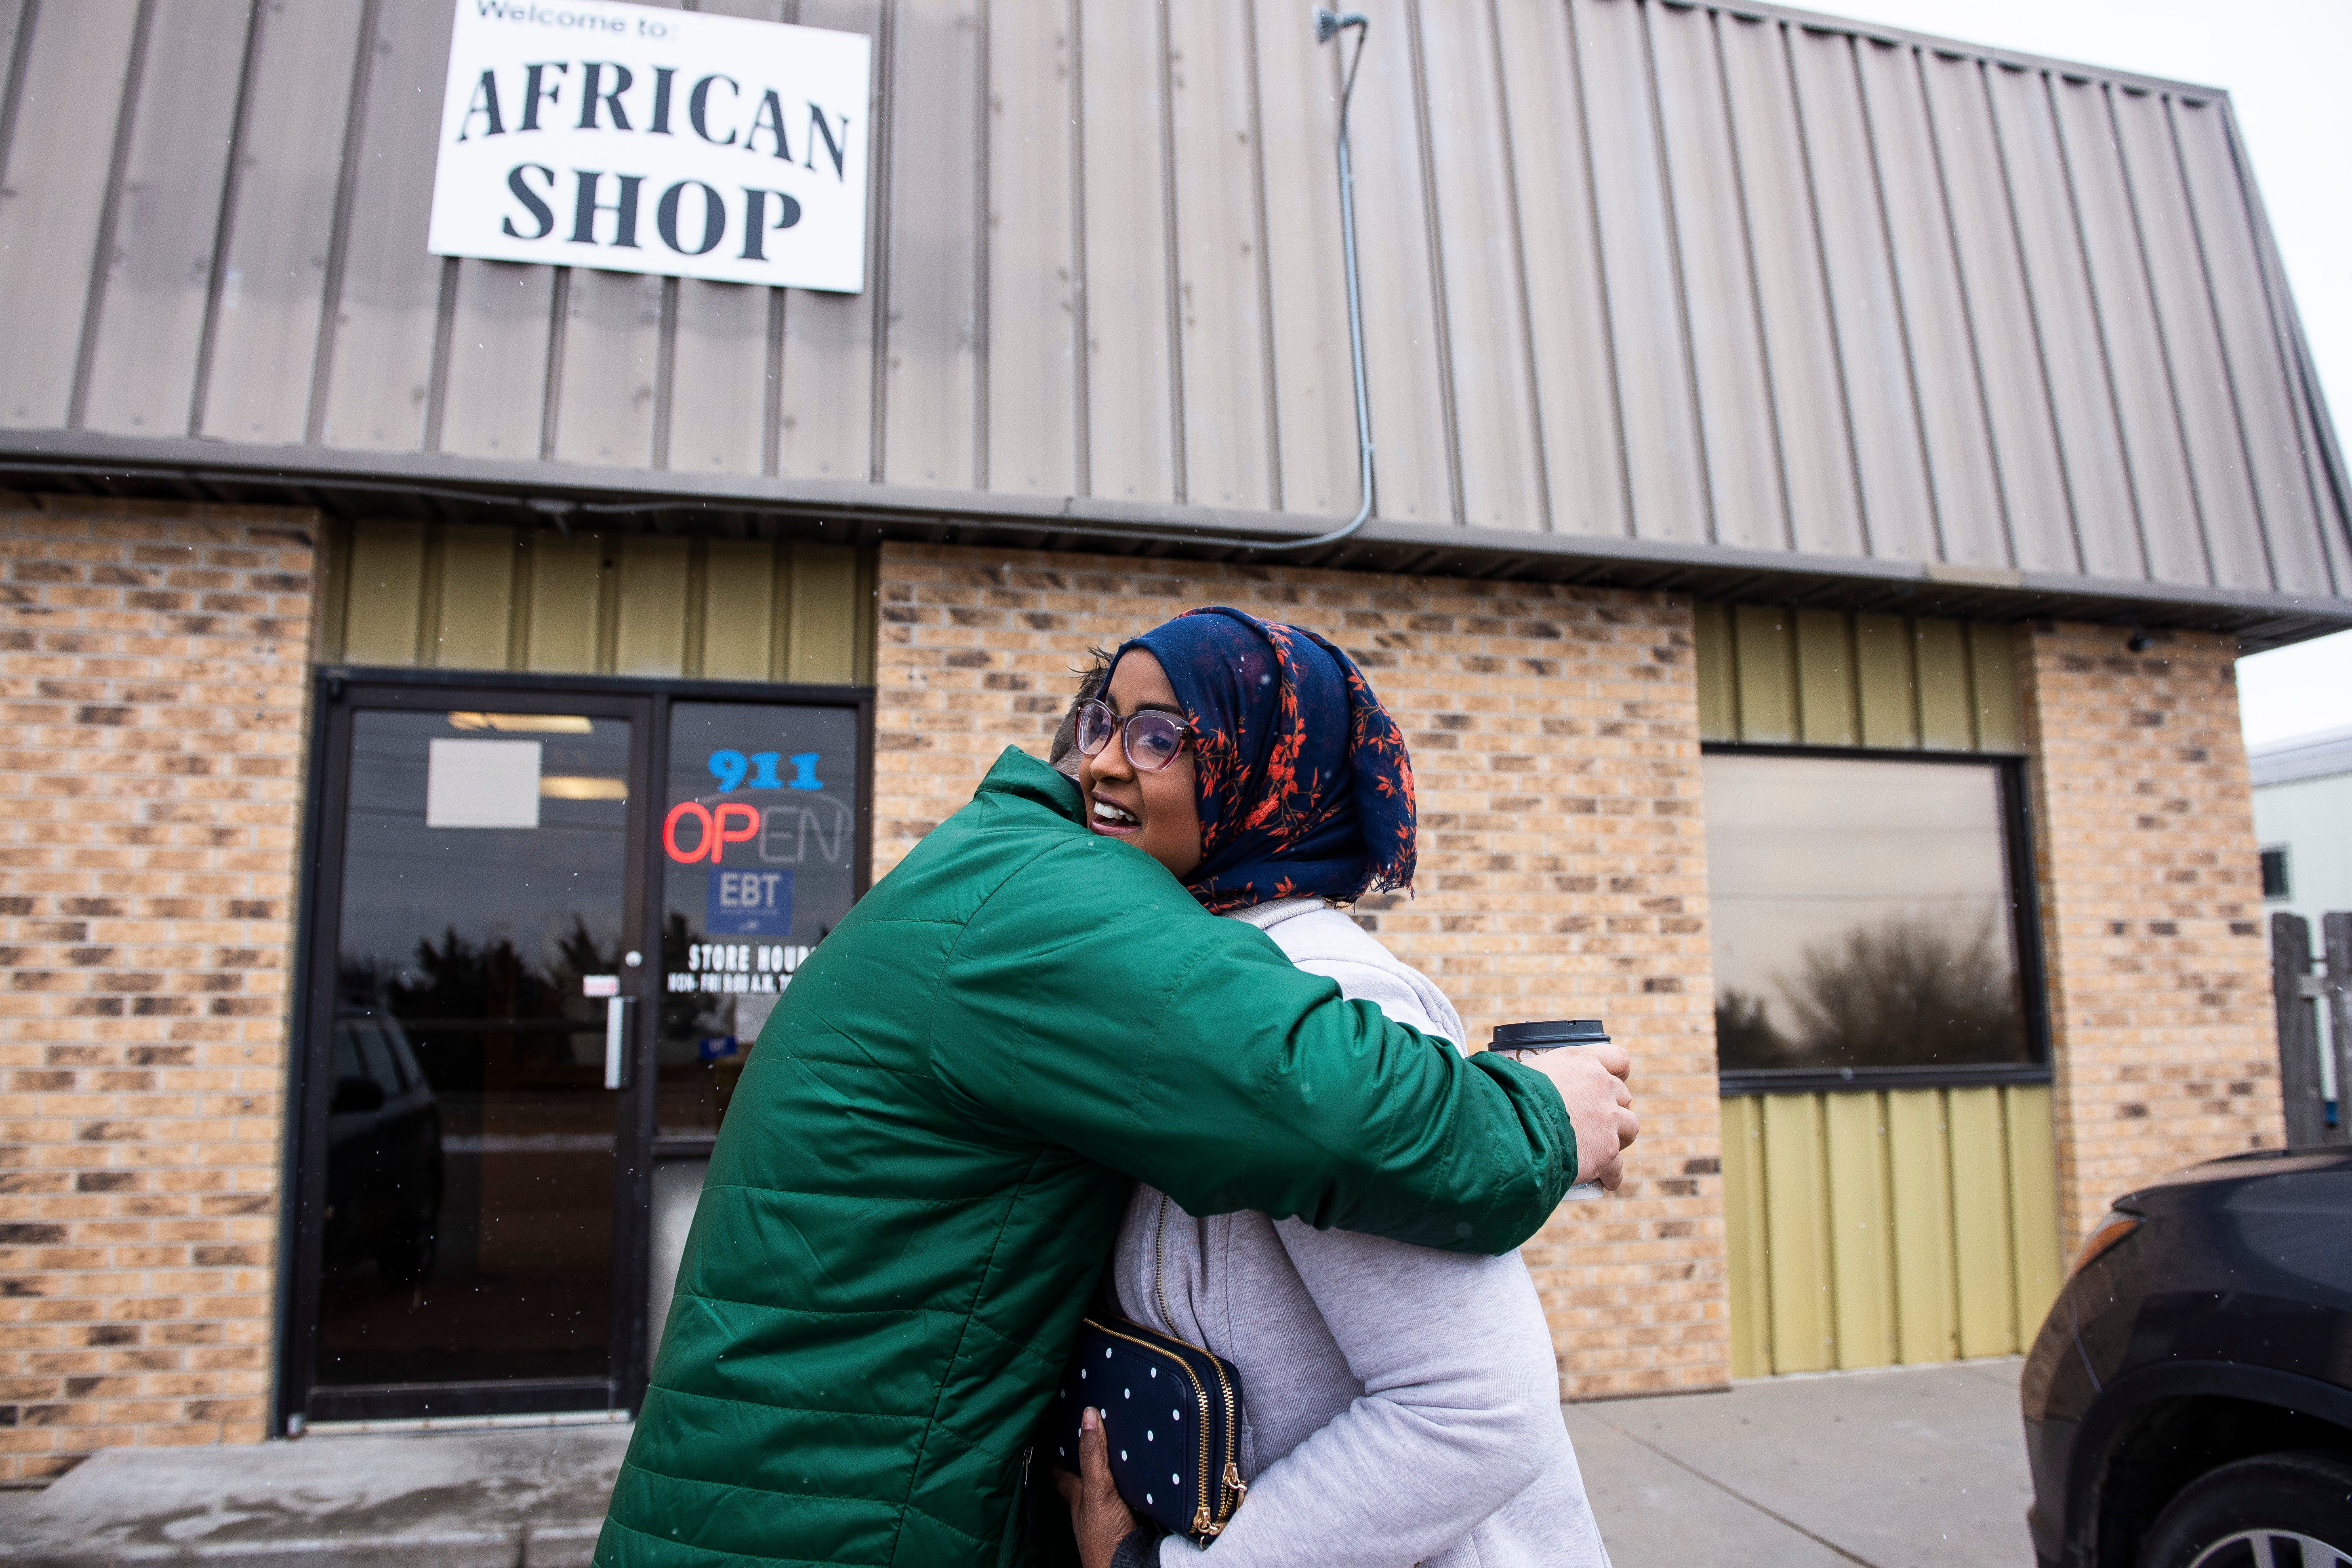 Kearny County Hospital CEO Benjamin Anderson, left, hugs Ifrah Ahmed outside the African Shop.